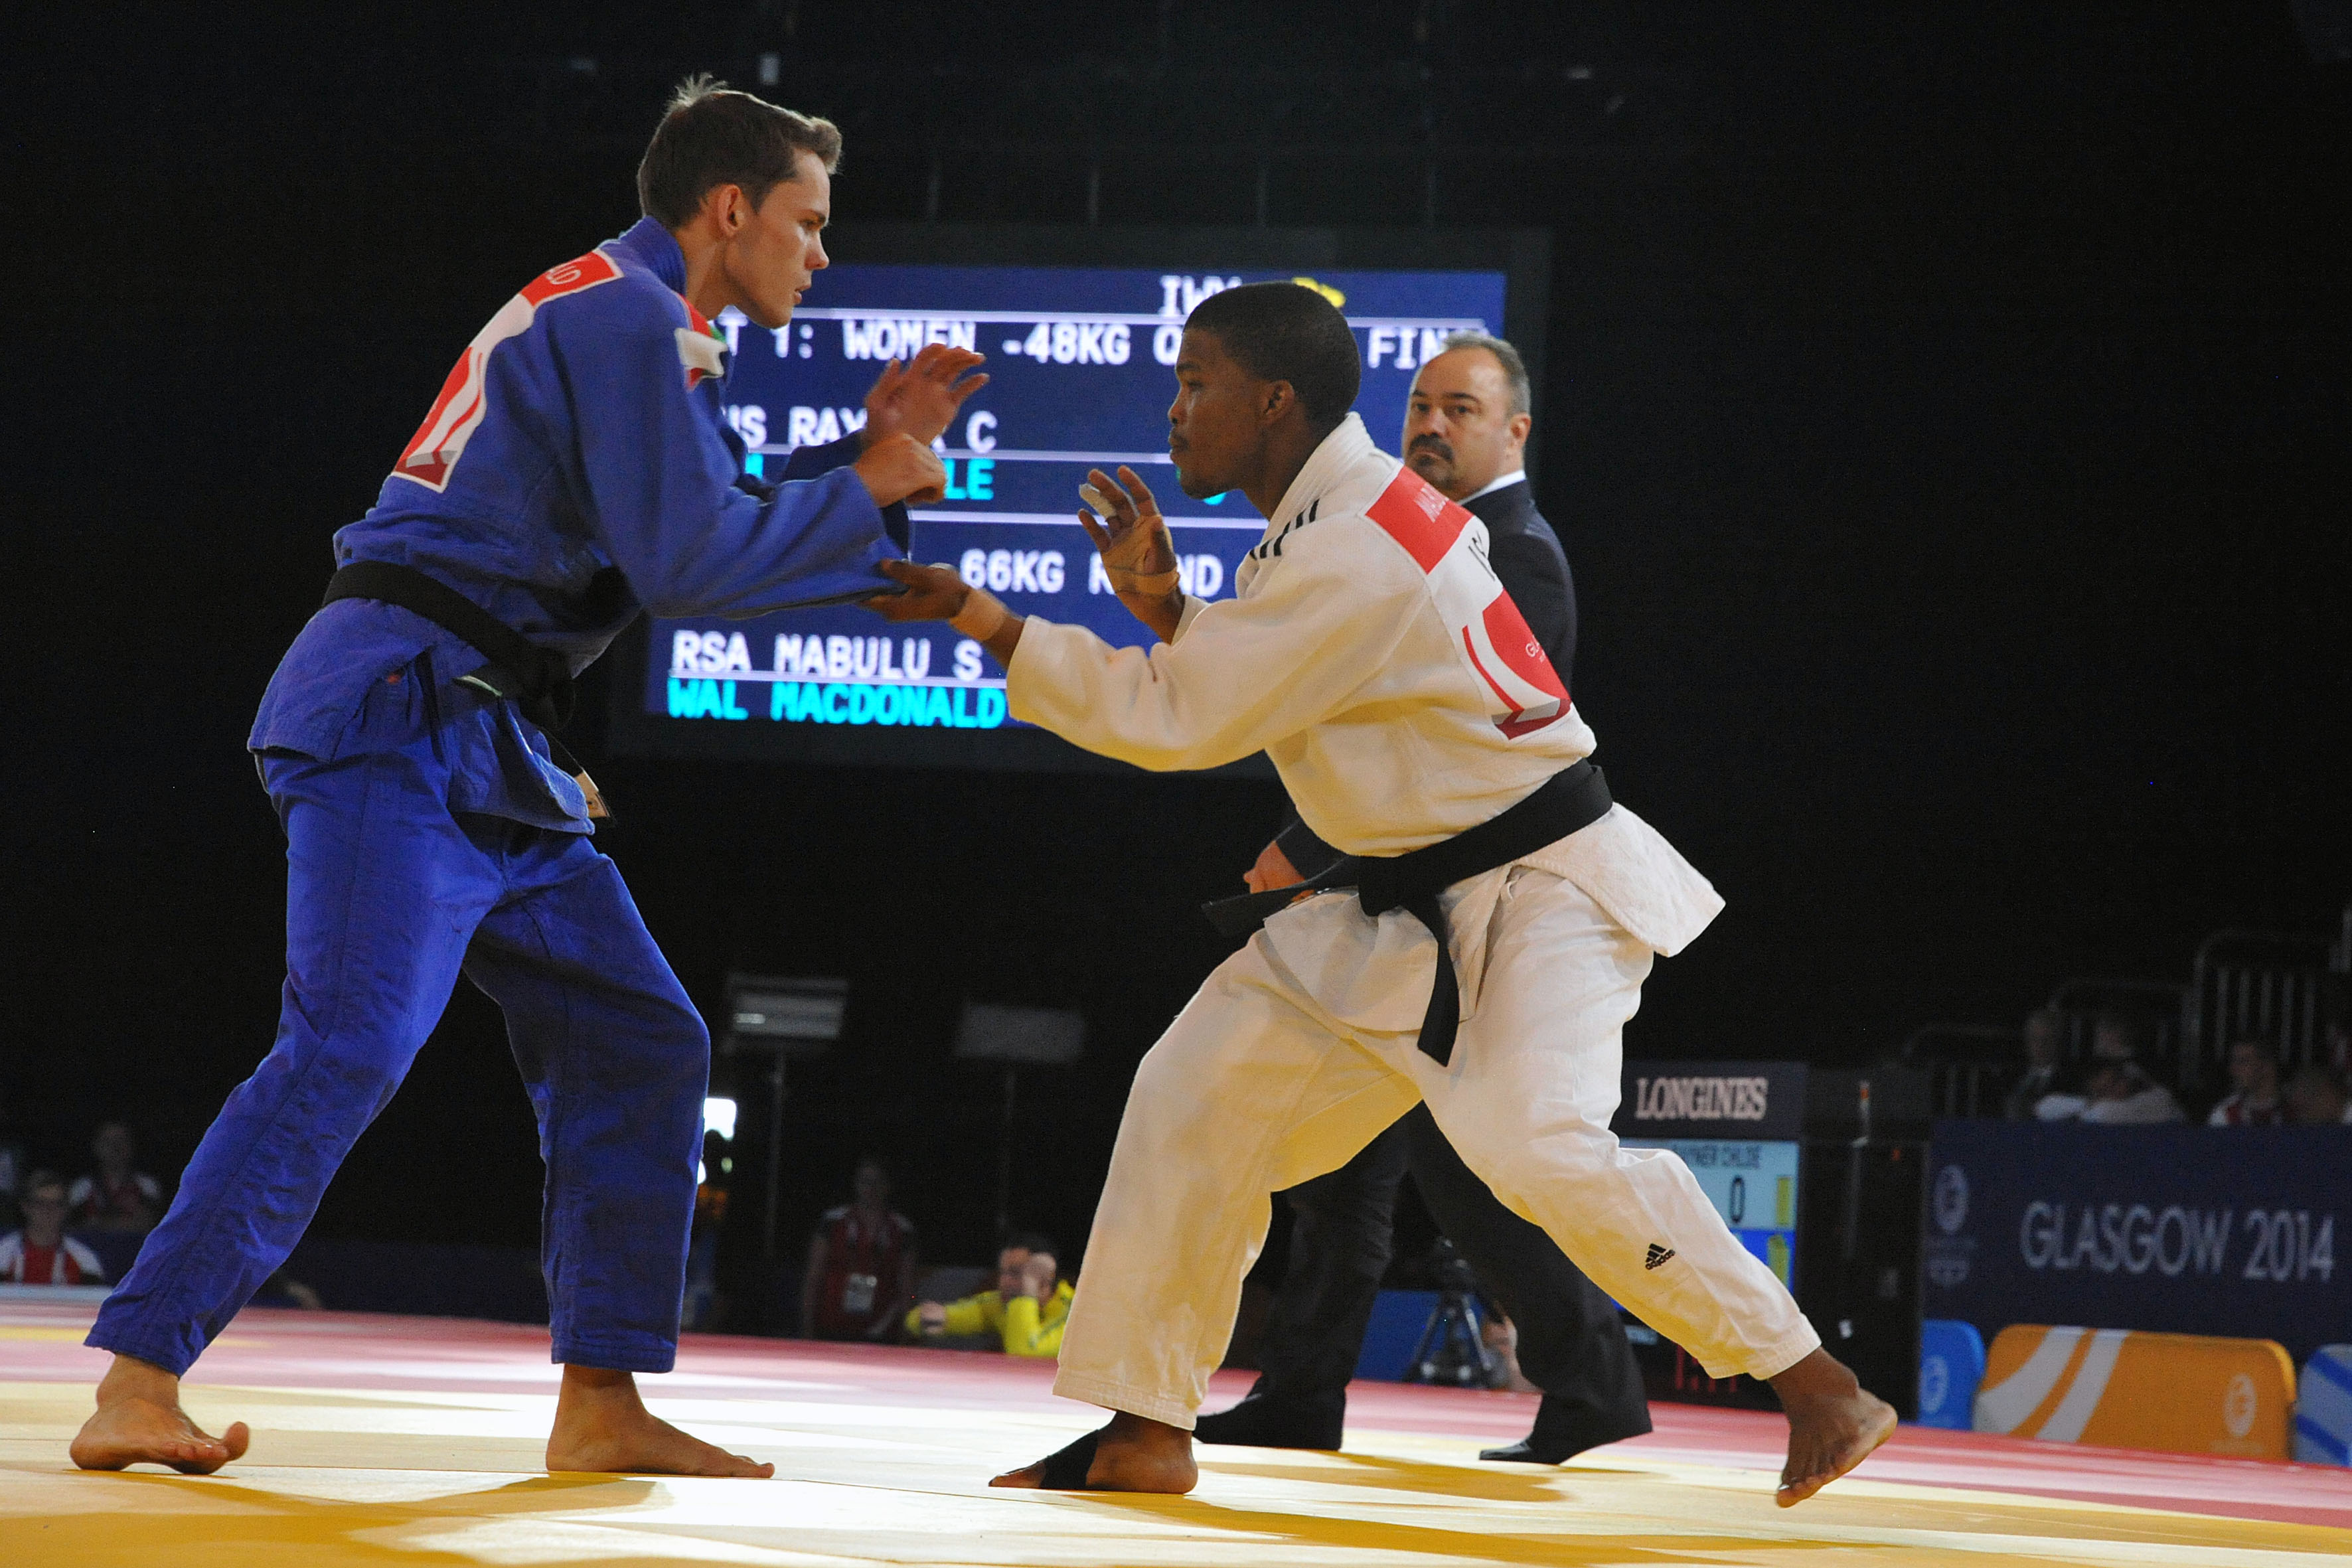 Mabulu makes it two medals for Team SA